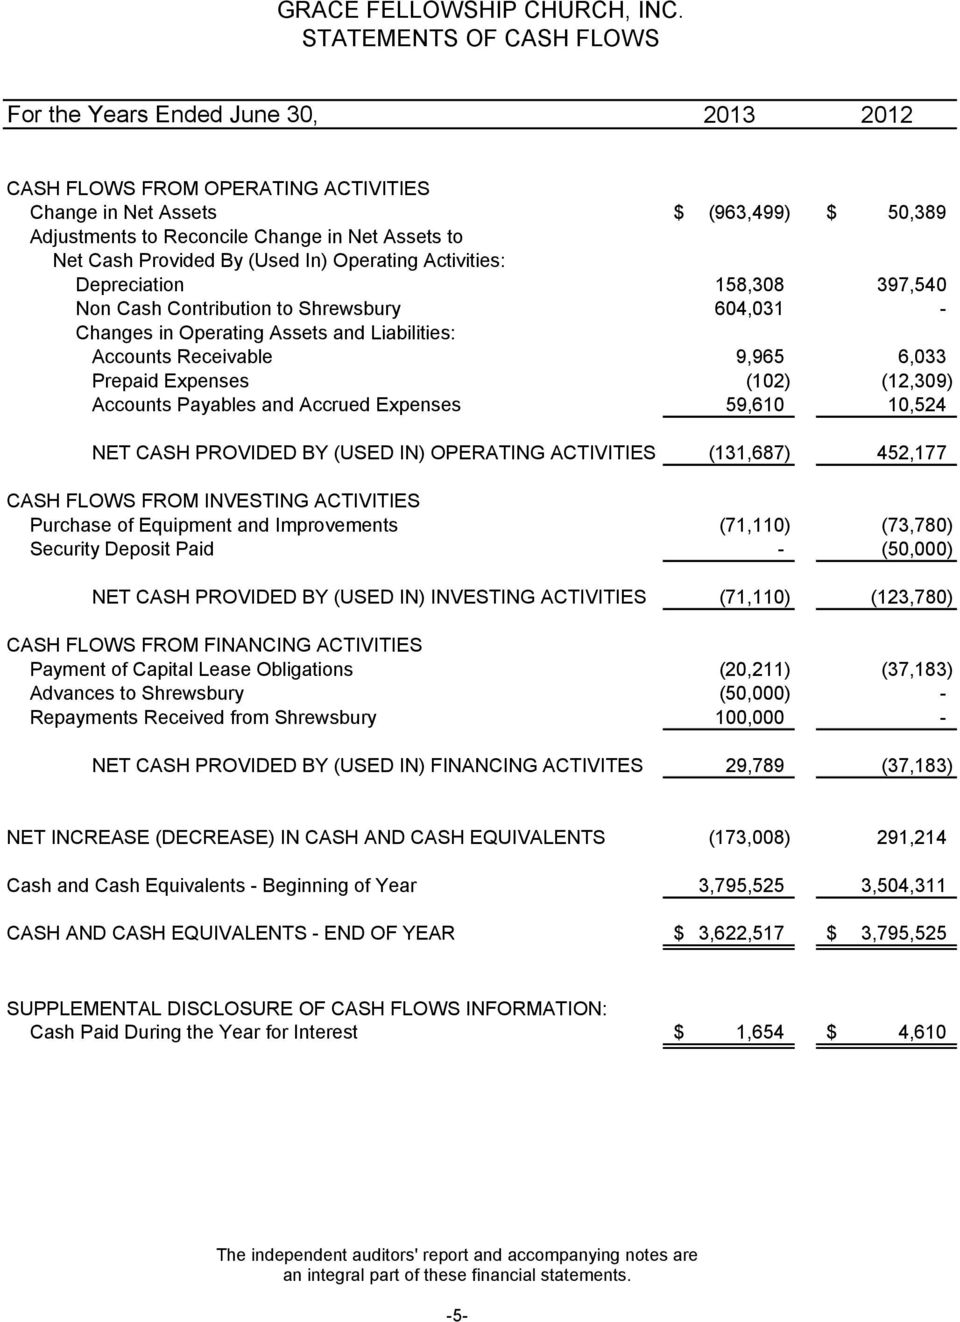 6,033 Prepaid Expenses (102) (12,309) Accounts Payables and Accrued Expenses 59,610 10,524 NET CASH PROVIDED BY (USED IN) OPERATING ACTIVITIES (131,687) 452,177 CASH FLOWS FROM INVESTING ACTIVITIES